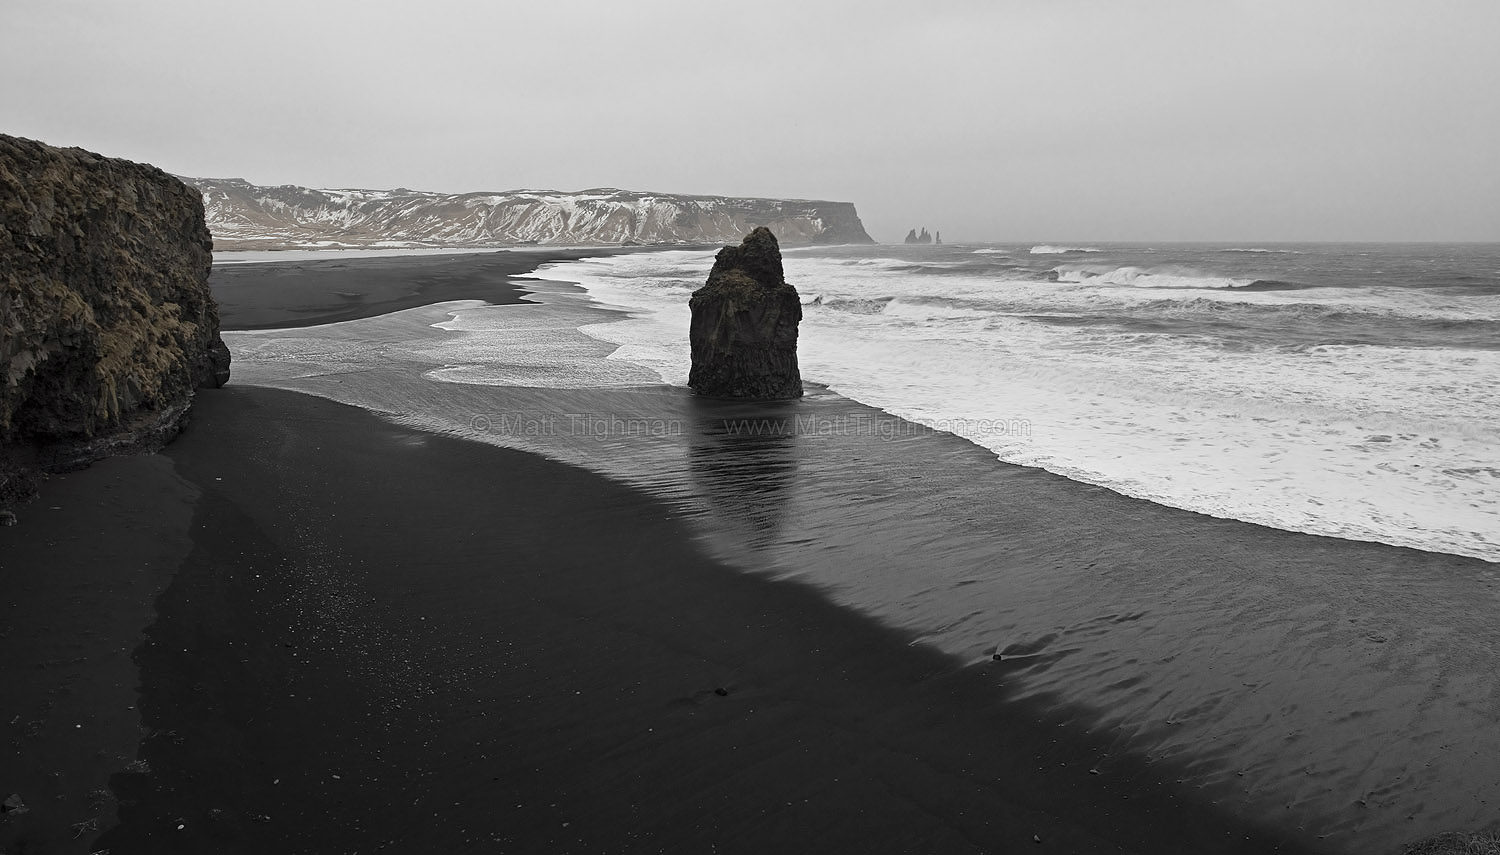 Fine art stock photograph from Iceland's Reynisfjara Beach, seen from Dyrhólaey. With its famous black sand, it takes on an ominous tone in stormy weather.